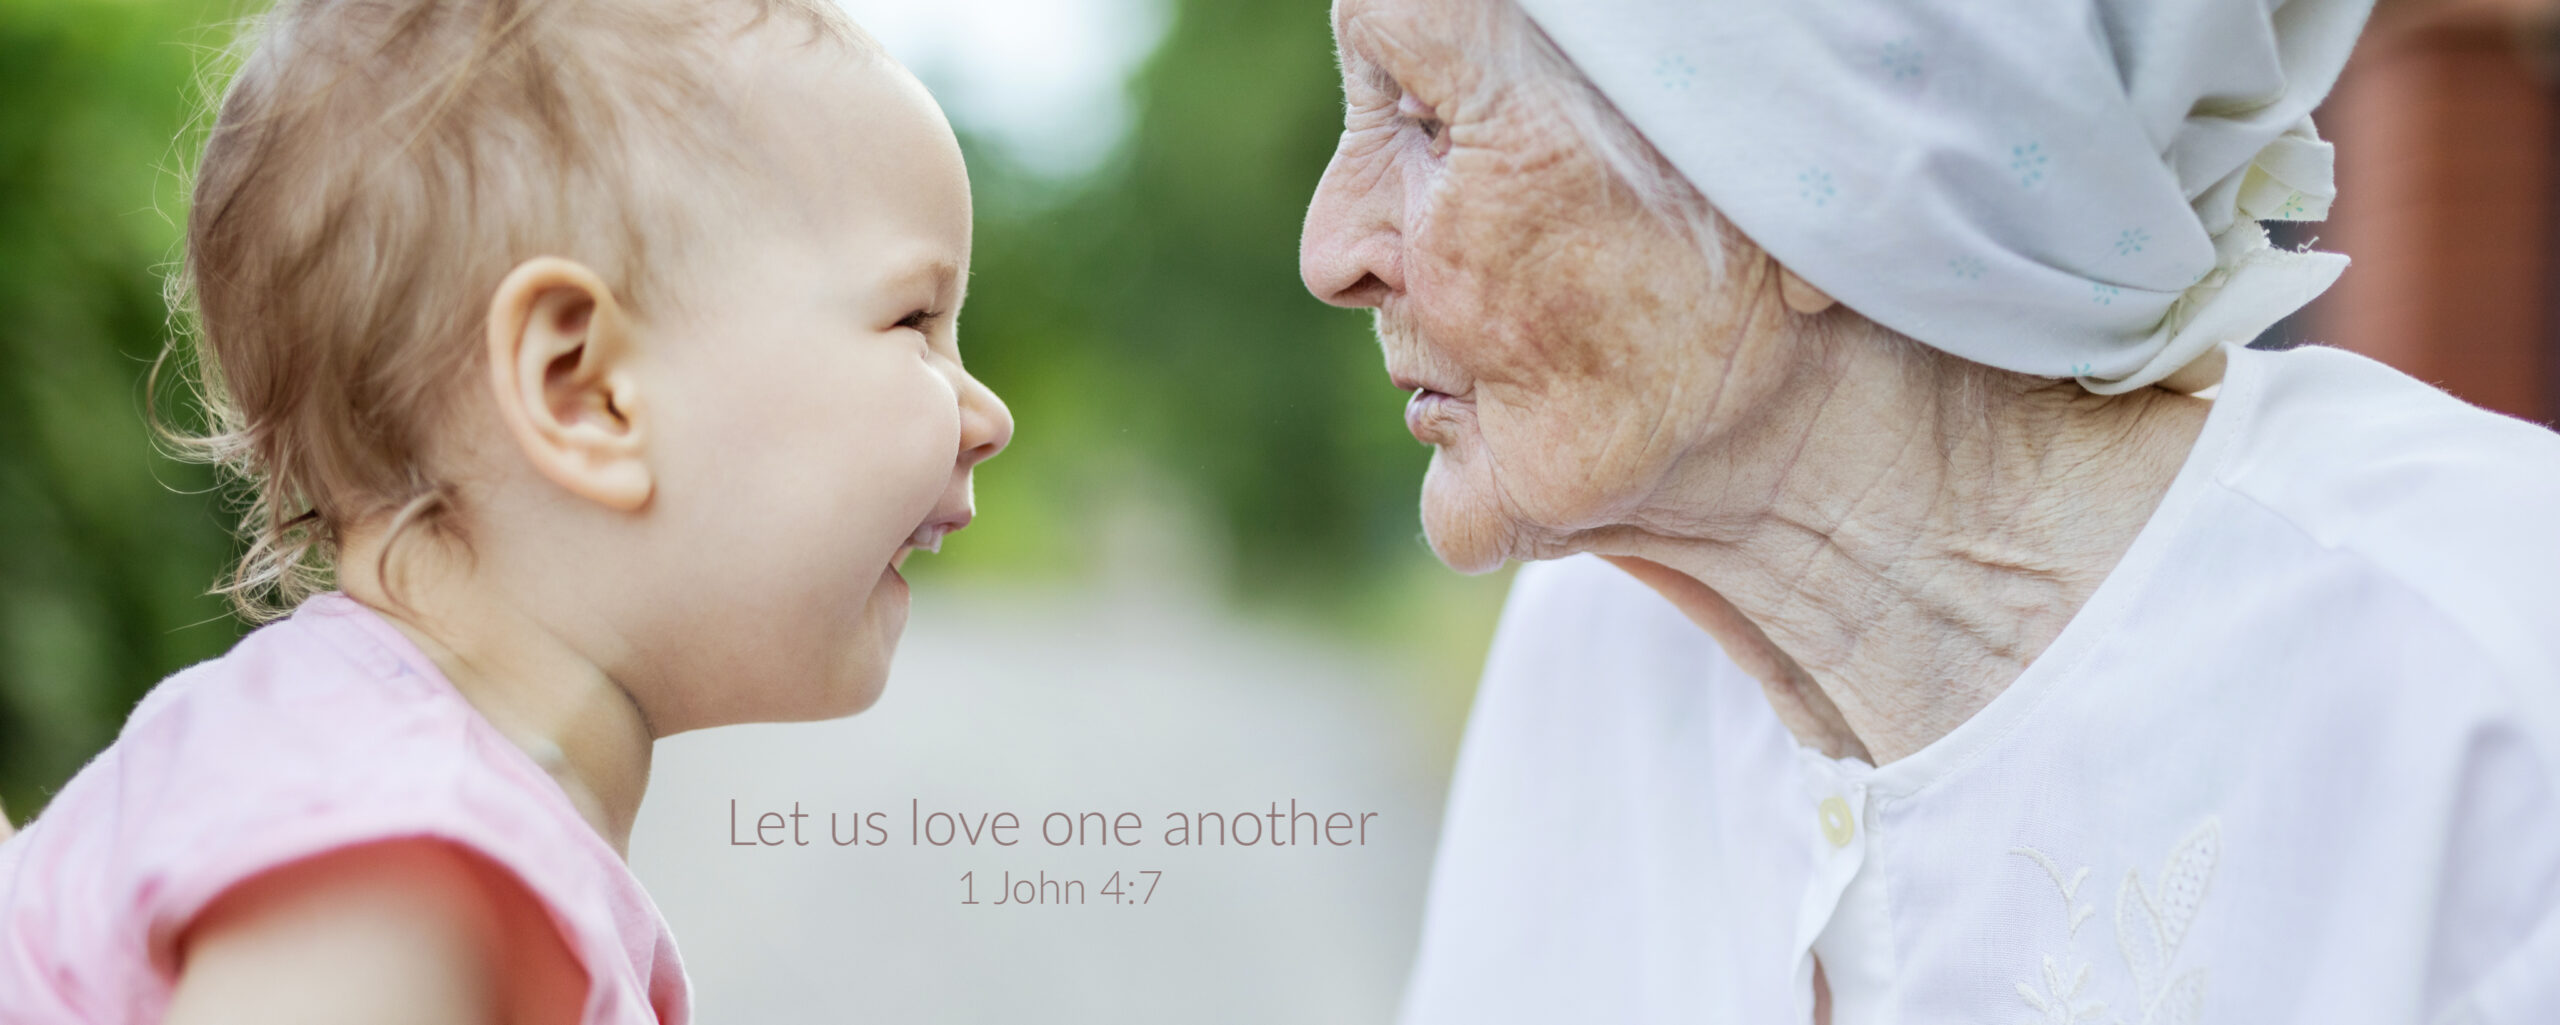 Grandmother and grandchild Looking at one another in a loving way